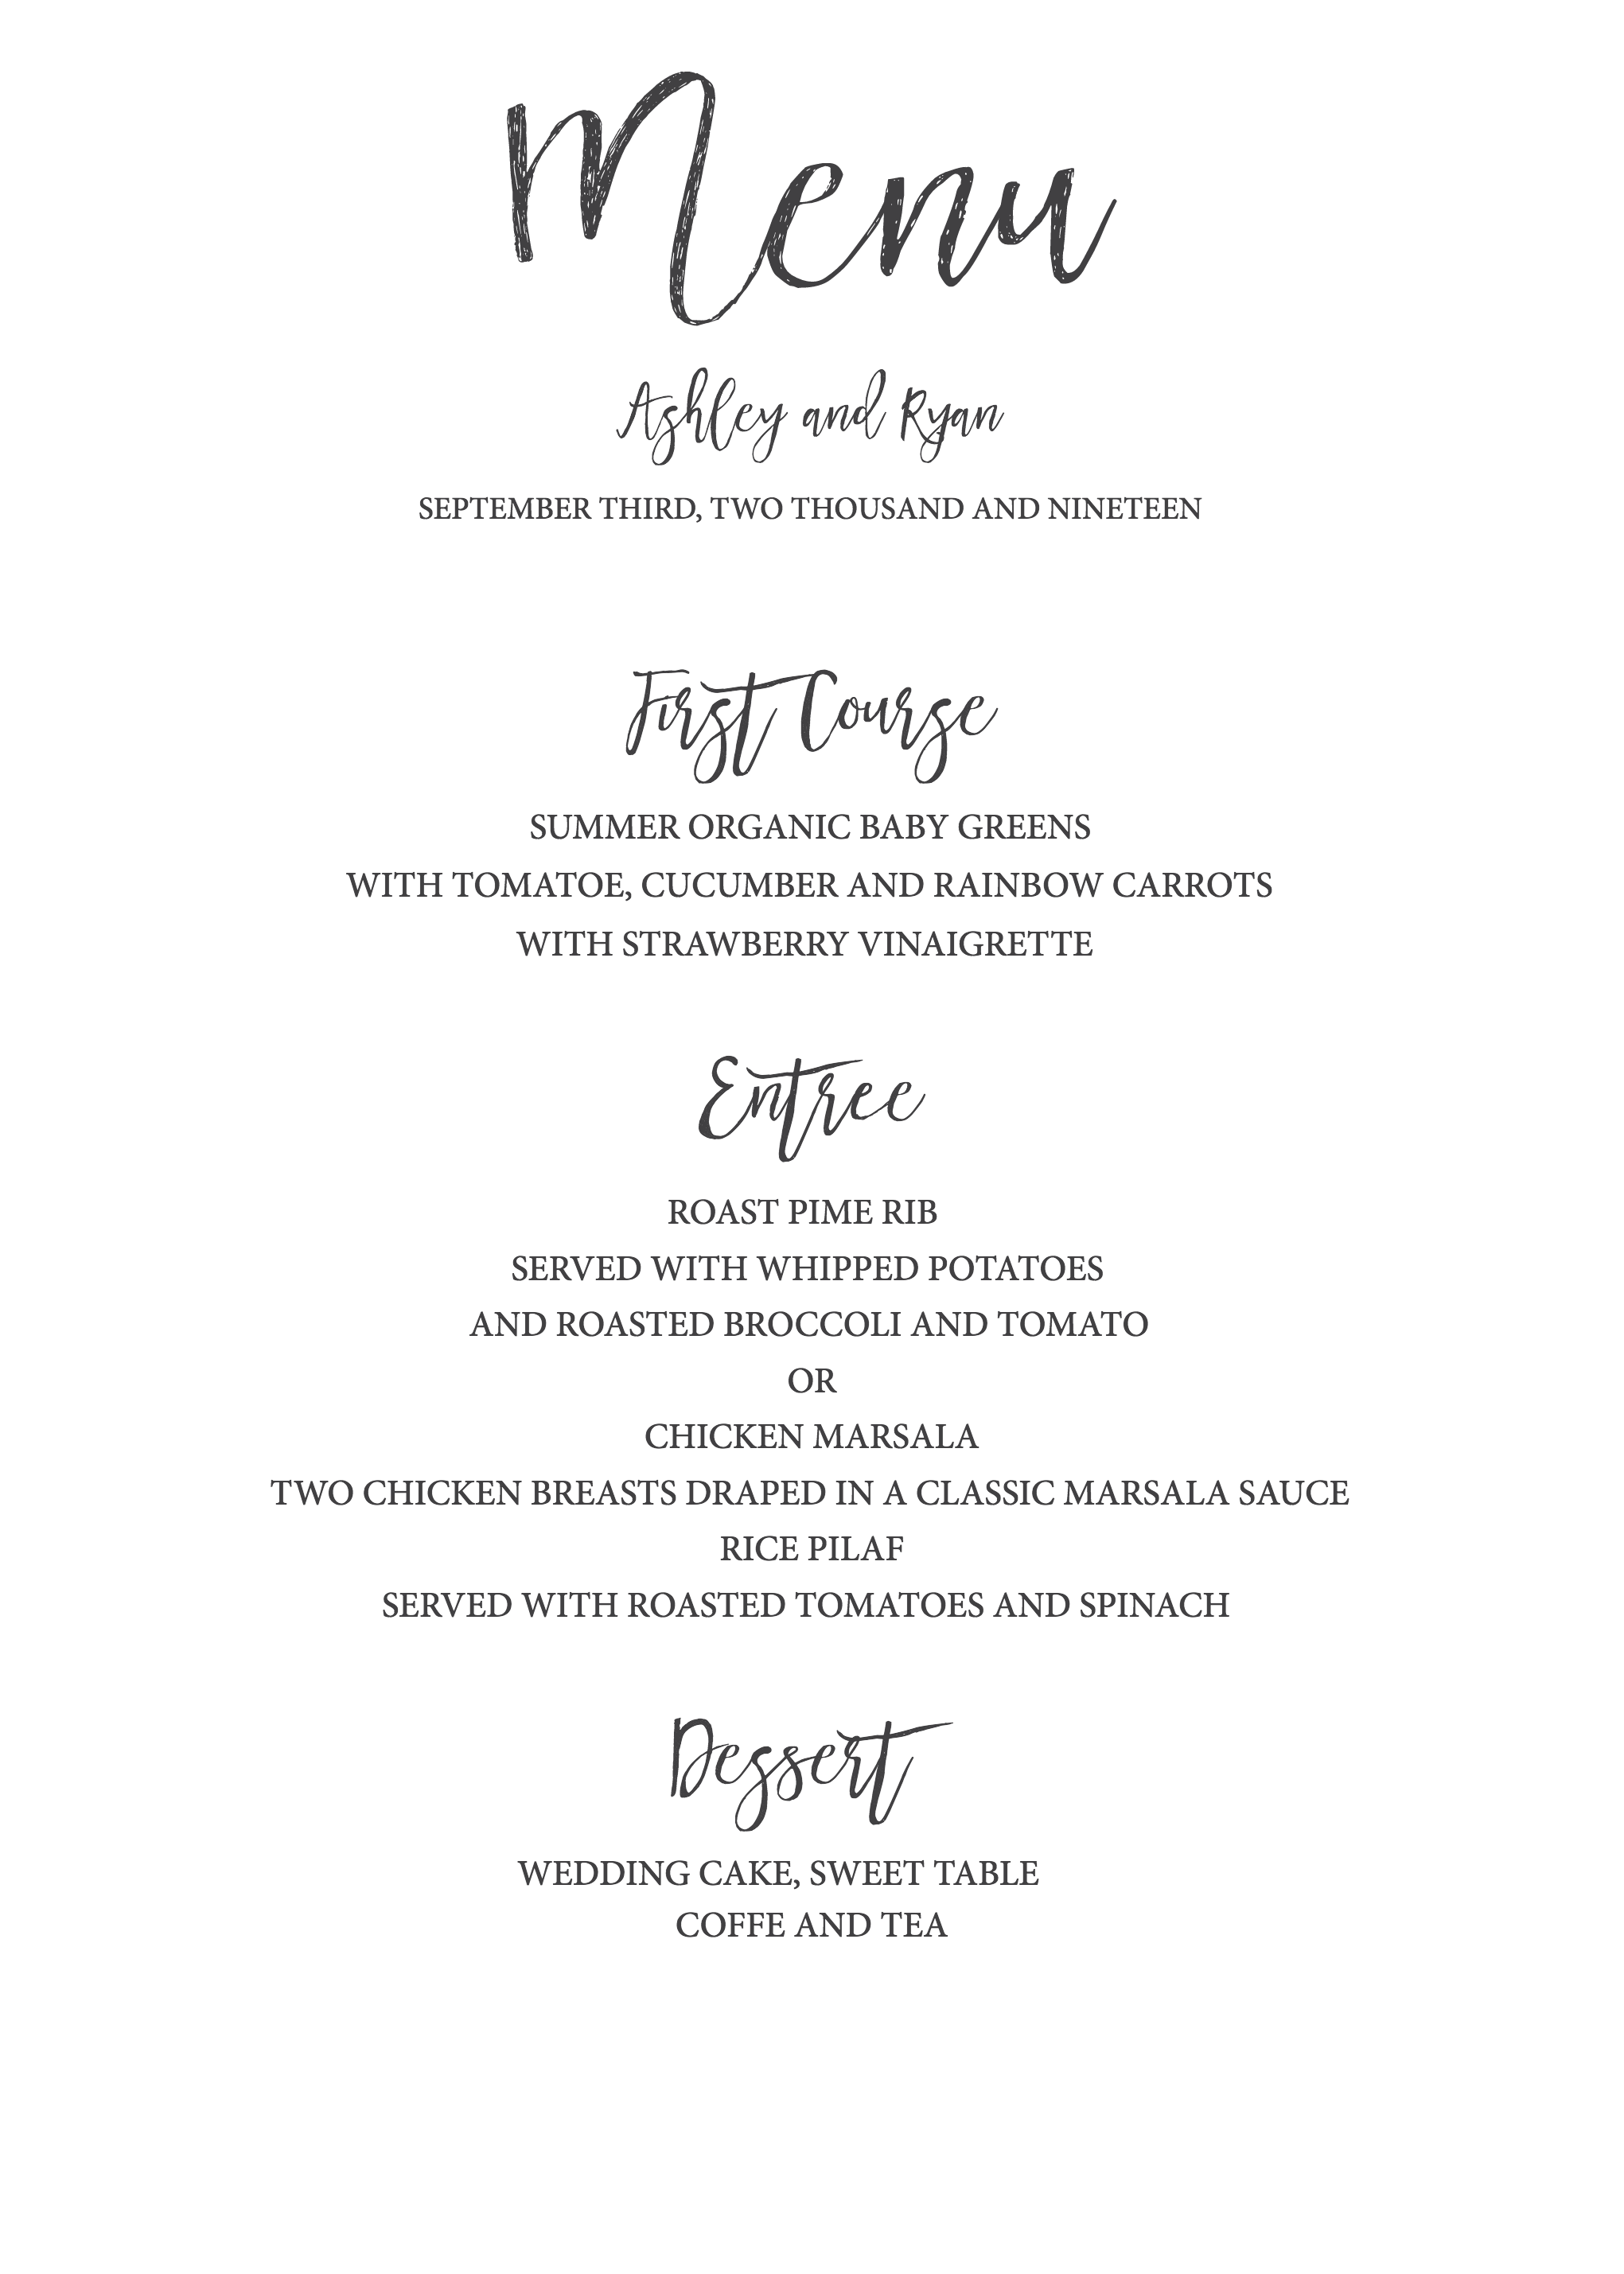 Wedding Menu Template.Timeless And Simple Wedding Invitation Freebies Free Printables